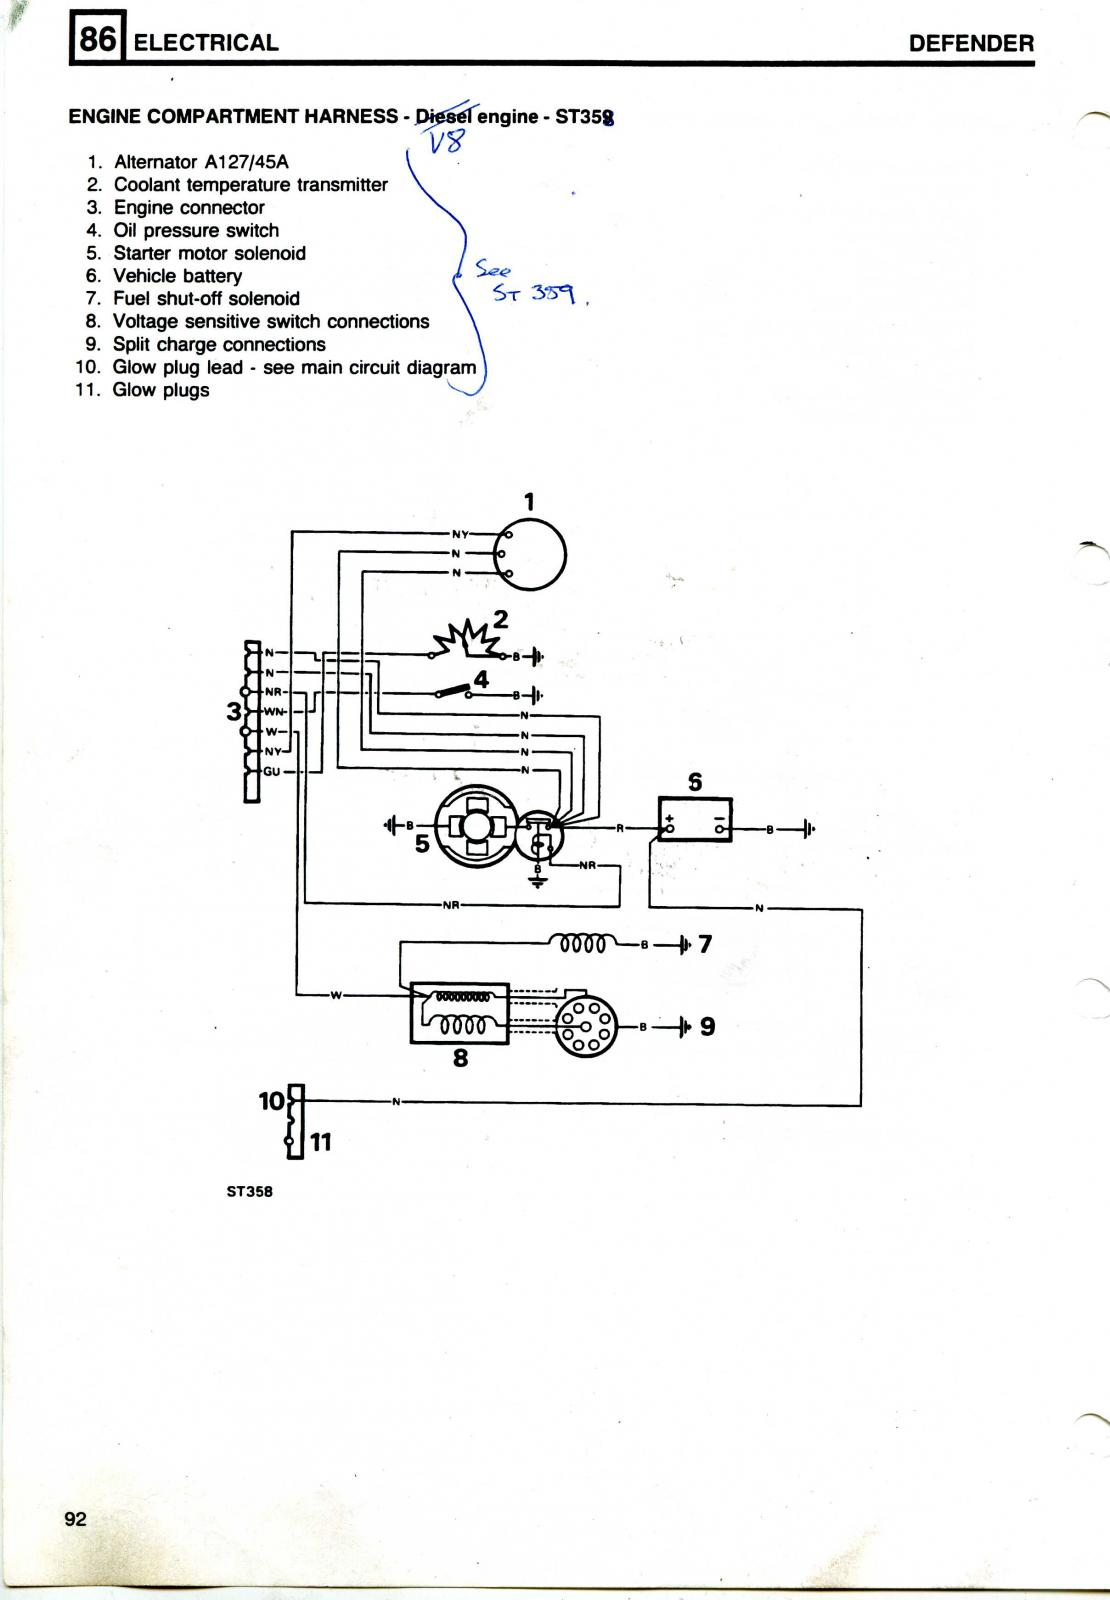 land rover 90 v8 3.5 (carb) wiring diagram needed ... 2002 land rover discovery stereo wiring diagram